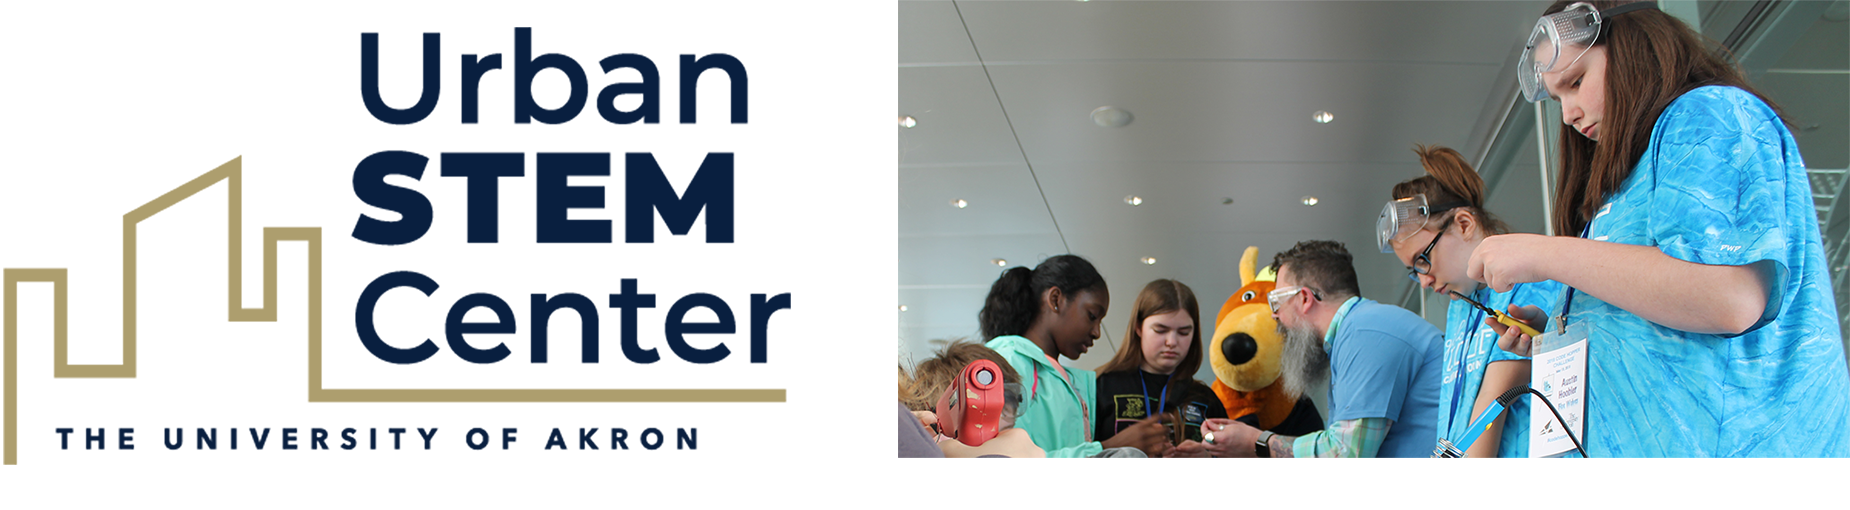 Urban STEM Center at The University of Akron College of Education